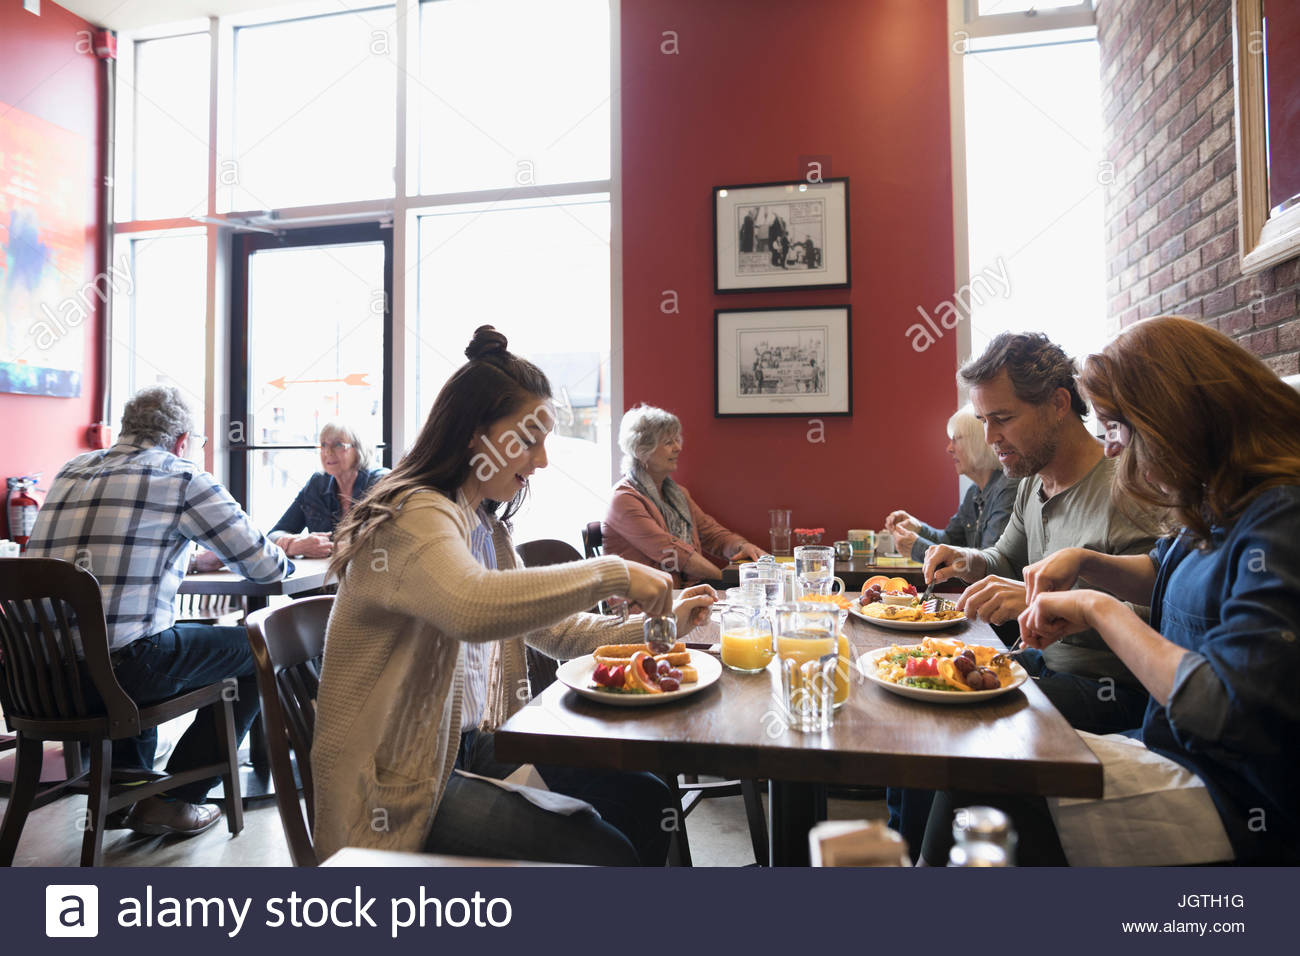 Parents with teenage daughter eating brunch at diner table - Stock Image